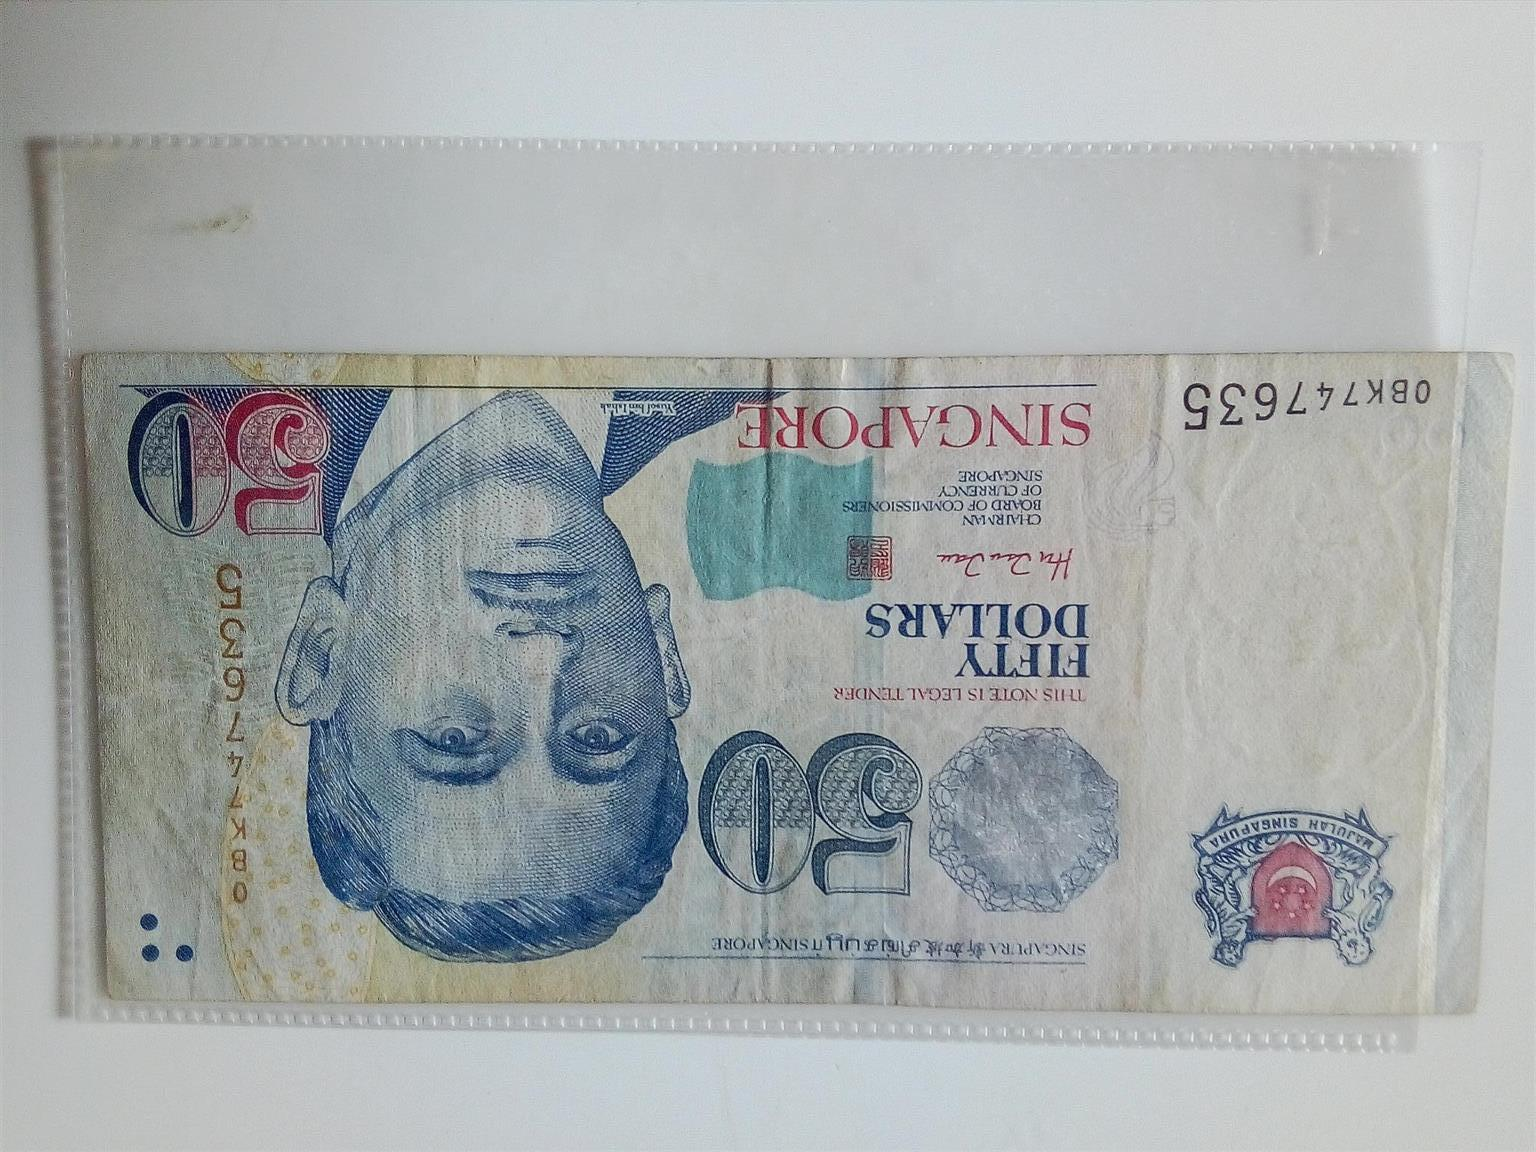 BANKNOTES FROM SINGAPORE, THAILAND AND THE UAE FOR SALE